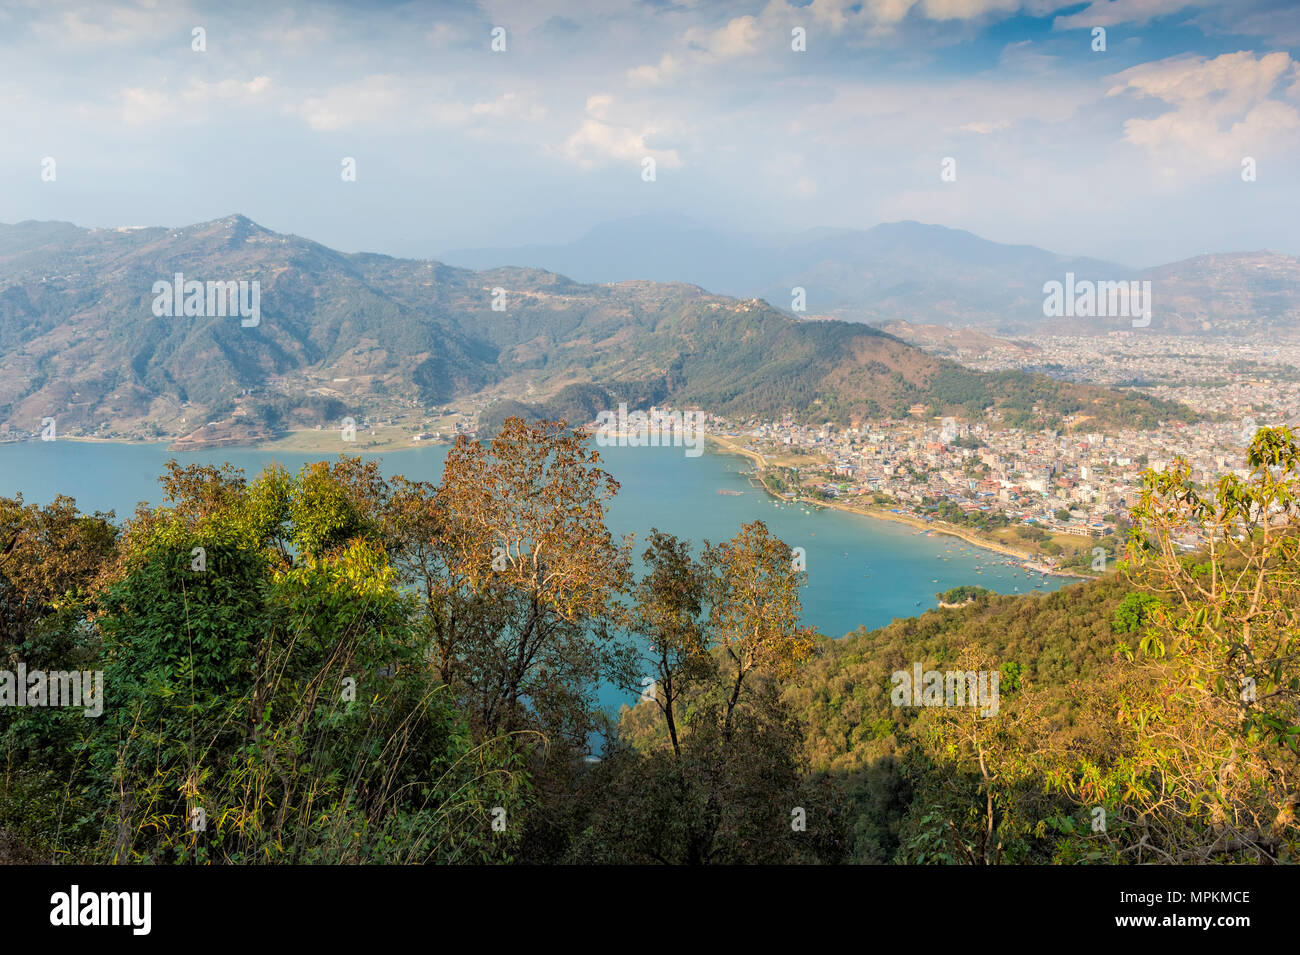 View over Pokhara and Phewa Lake from the World Peace Pagoda, Pokhara, Nepal - Stock Image